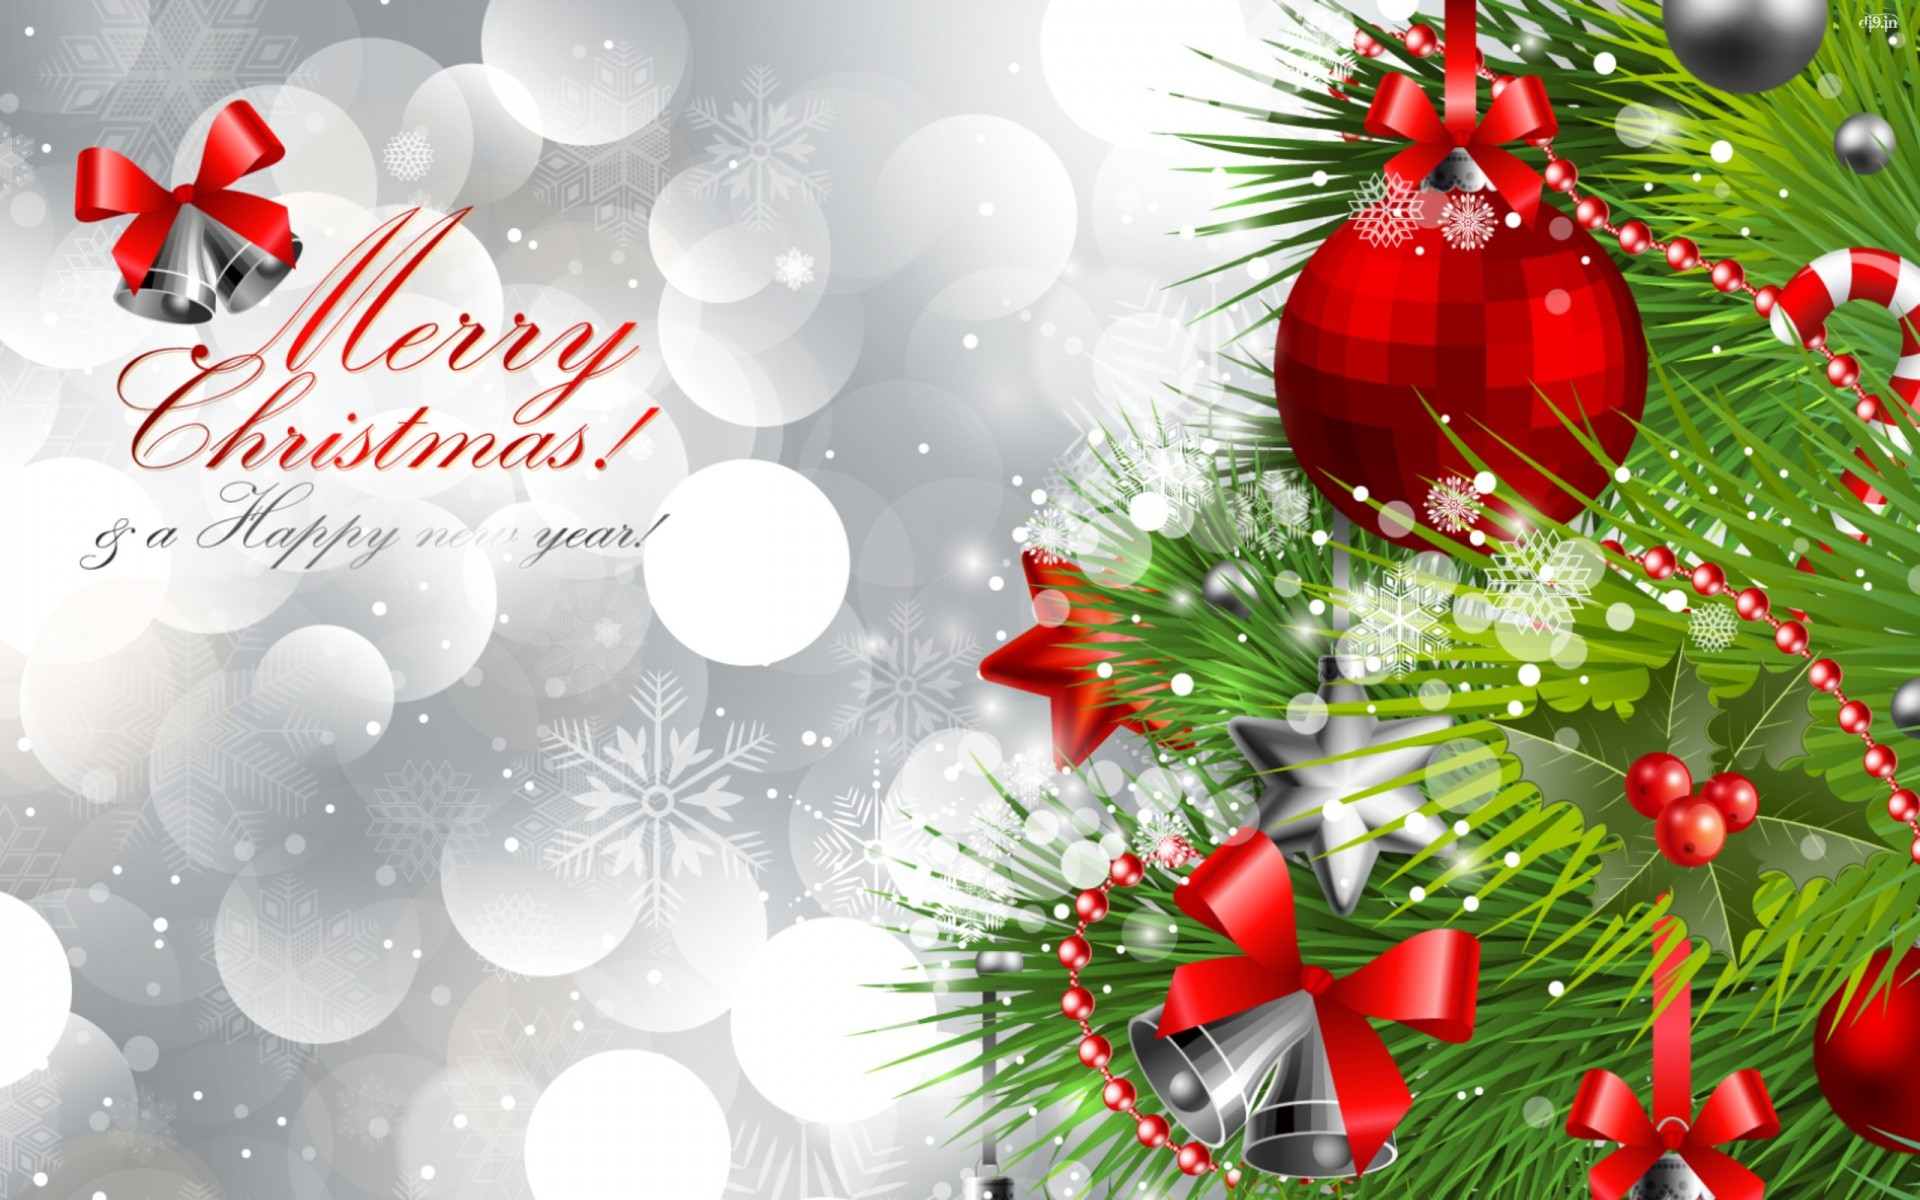 1920x1200 merry christmas and happy new year wallpaper hd cool 7 hd wallpapers